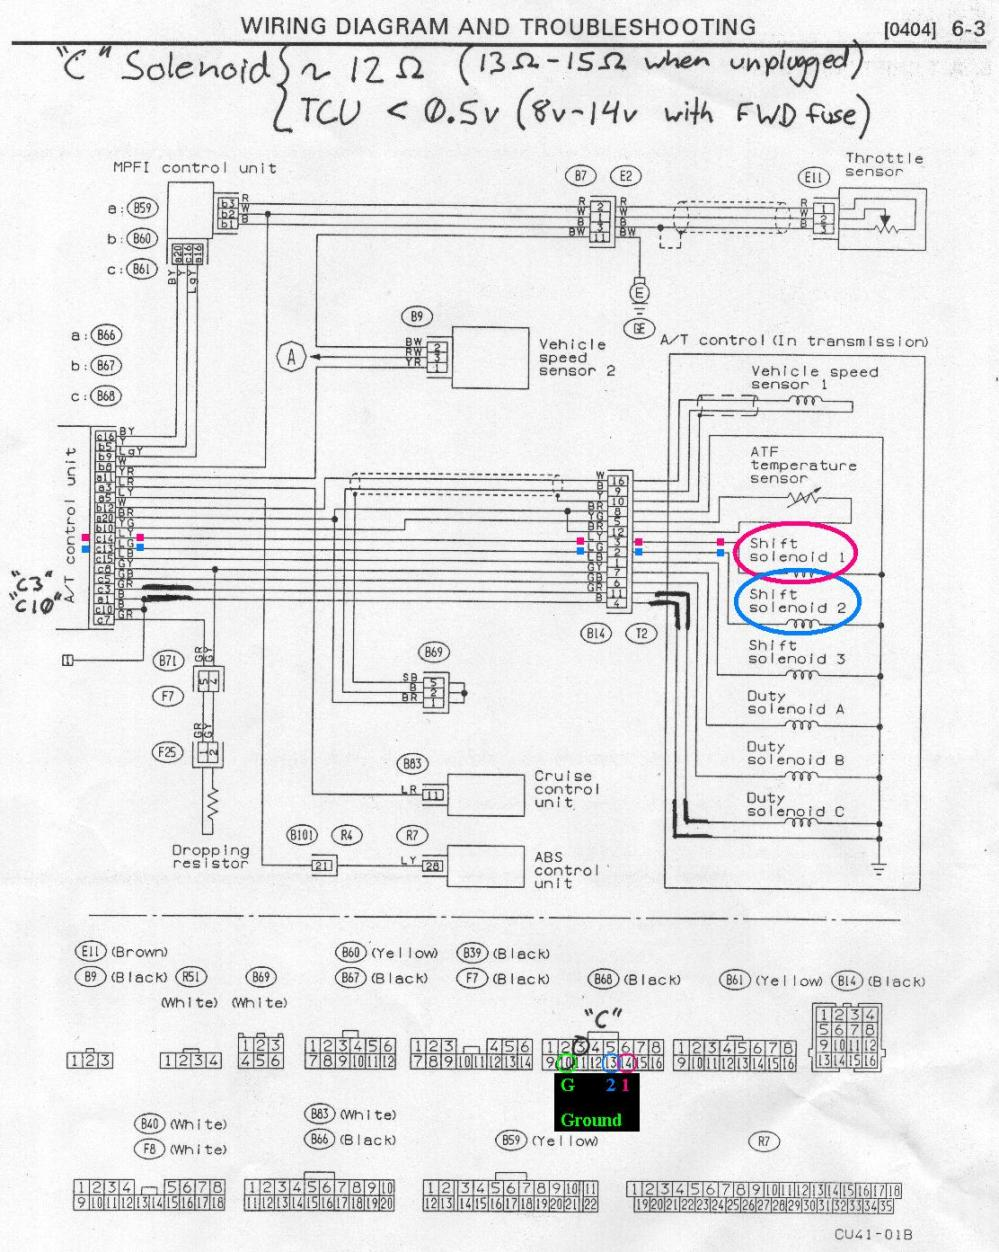 medium resolution of engine wiring harness for subaru svx wiring library 2000 subaru outback wiring diagram subaru svx wiring diagram